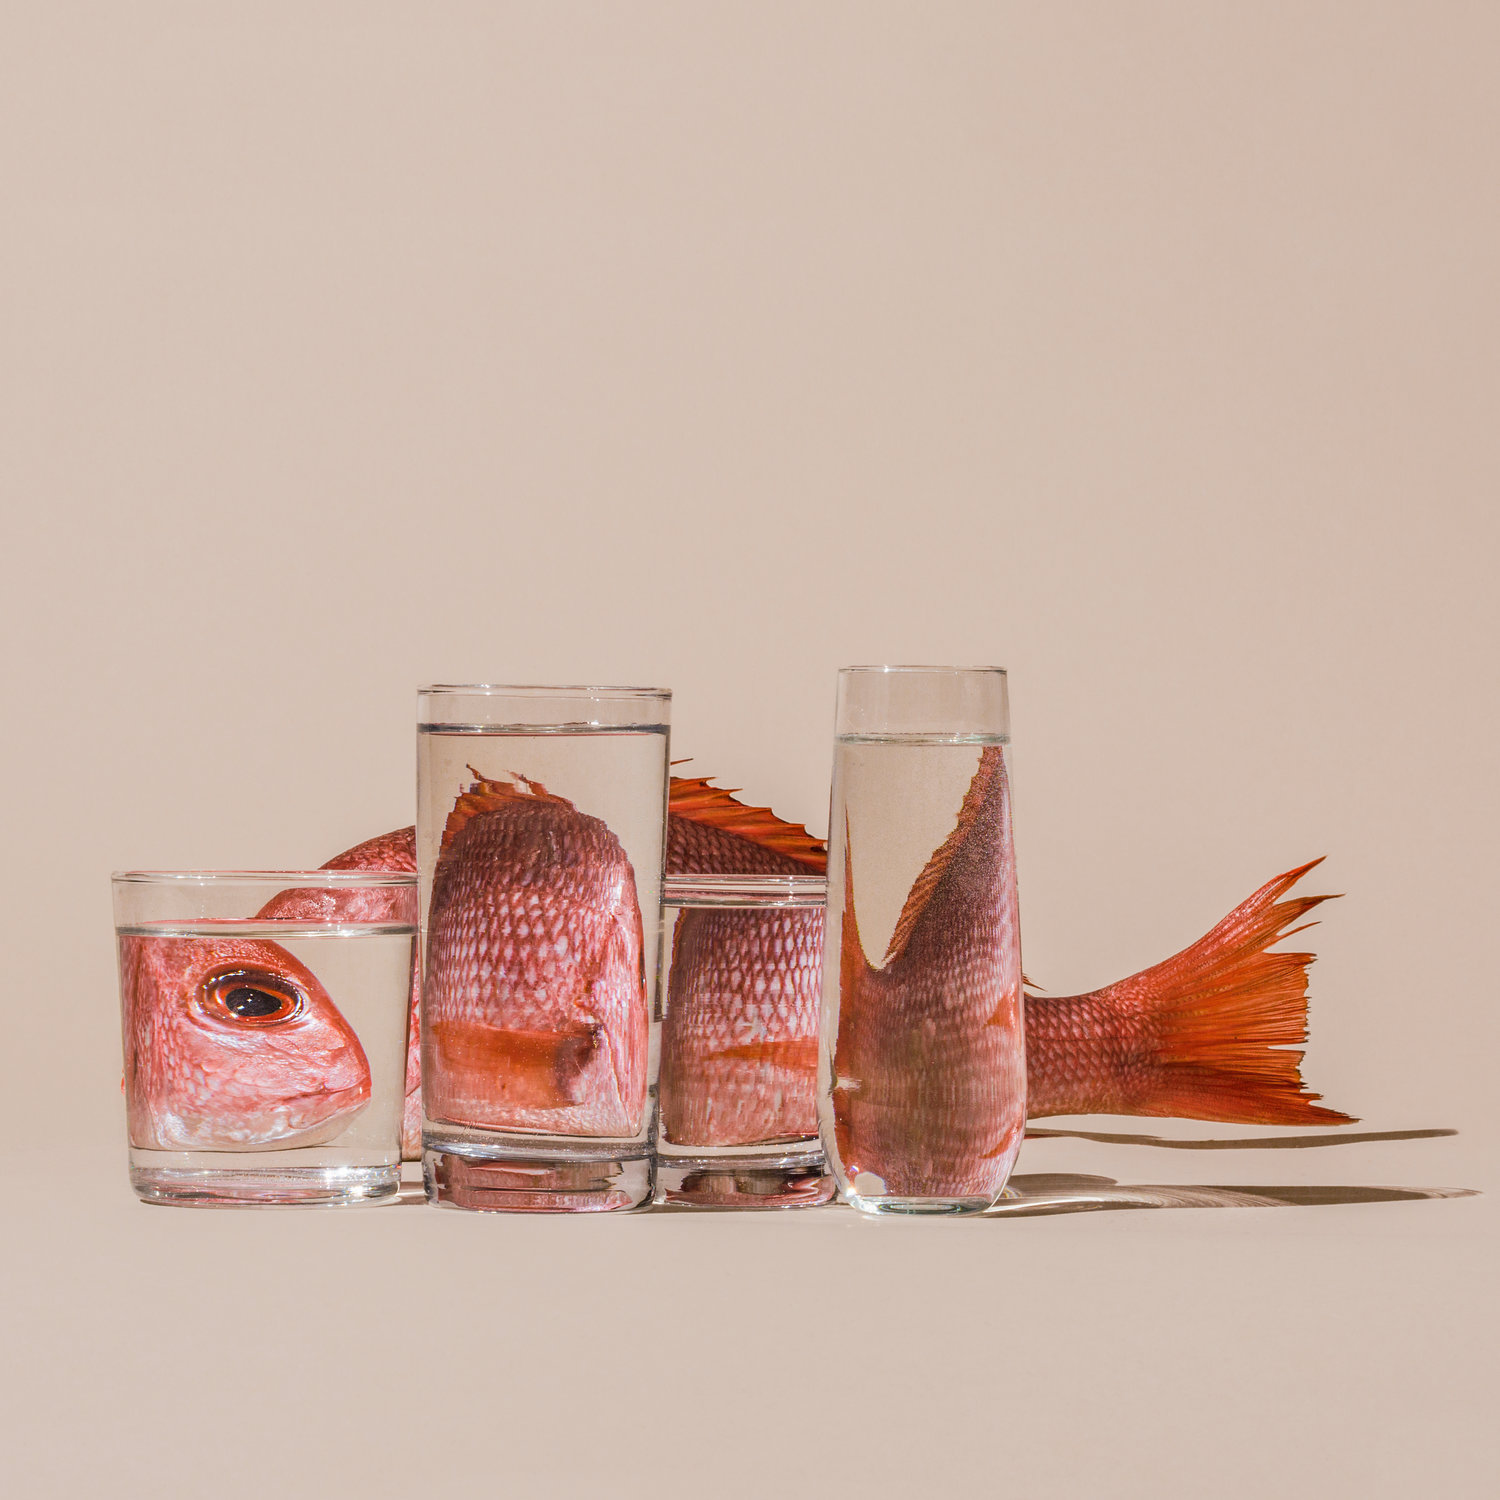 An art photo. The background is neutral and there is a fish with glasses of water placed in front of it to distort our view of the fish.